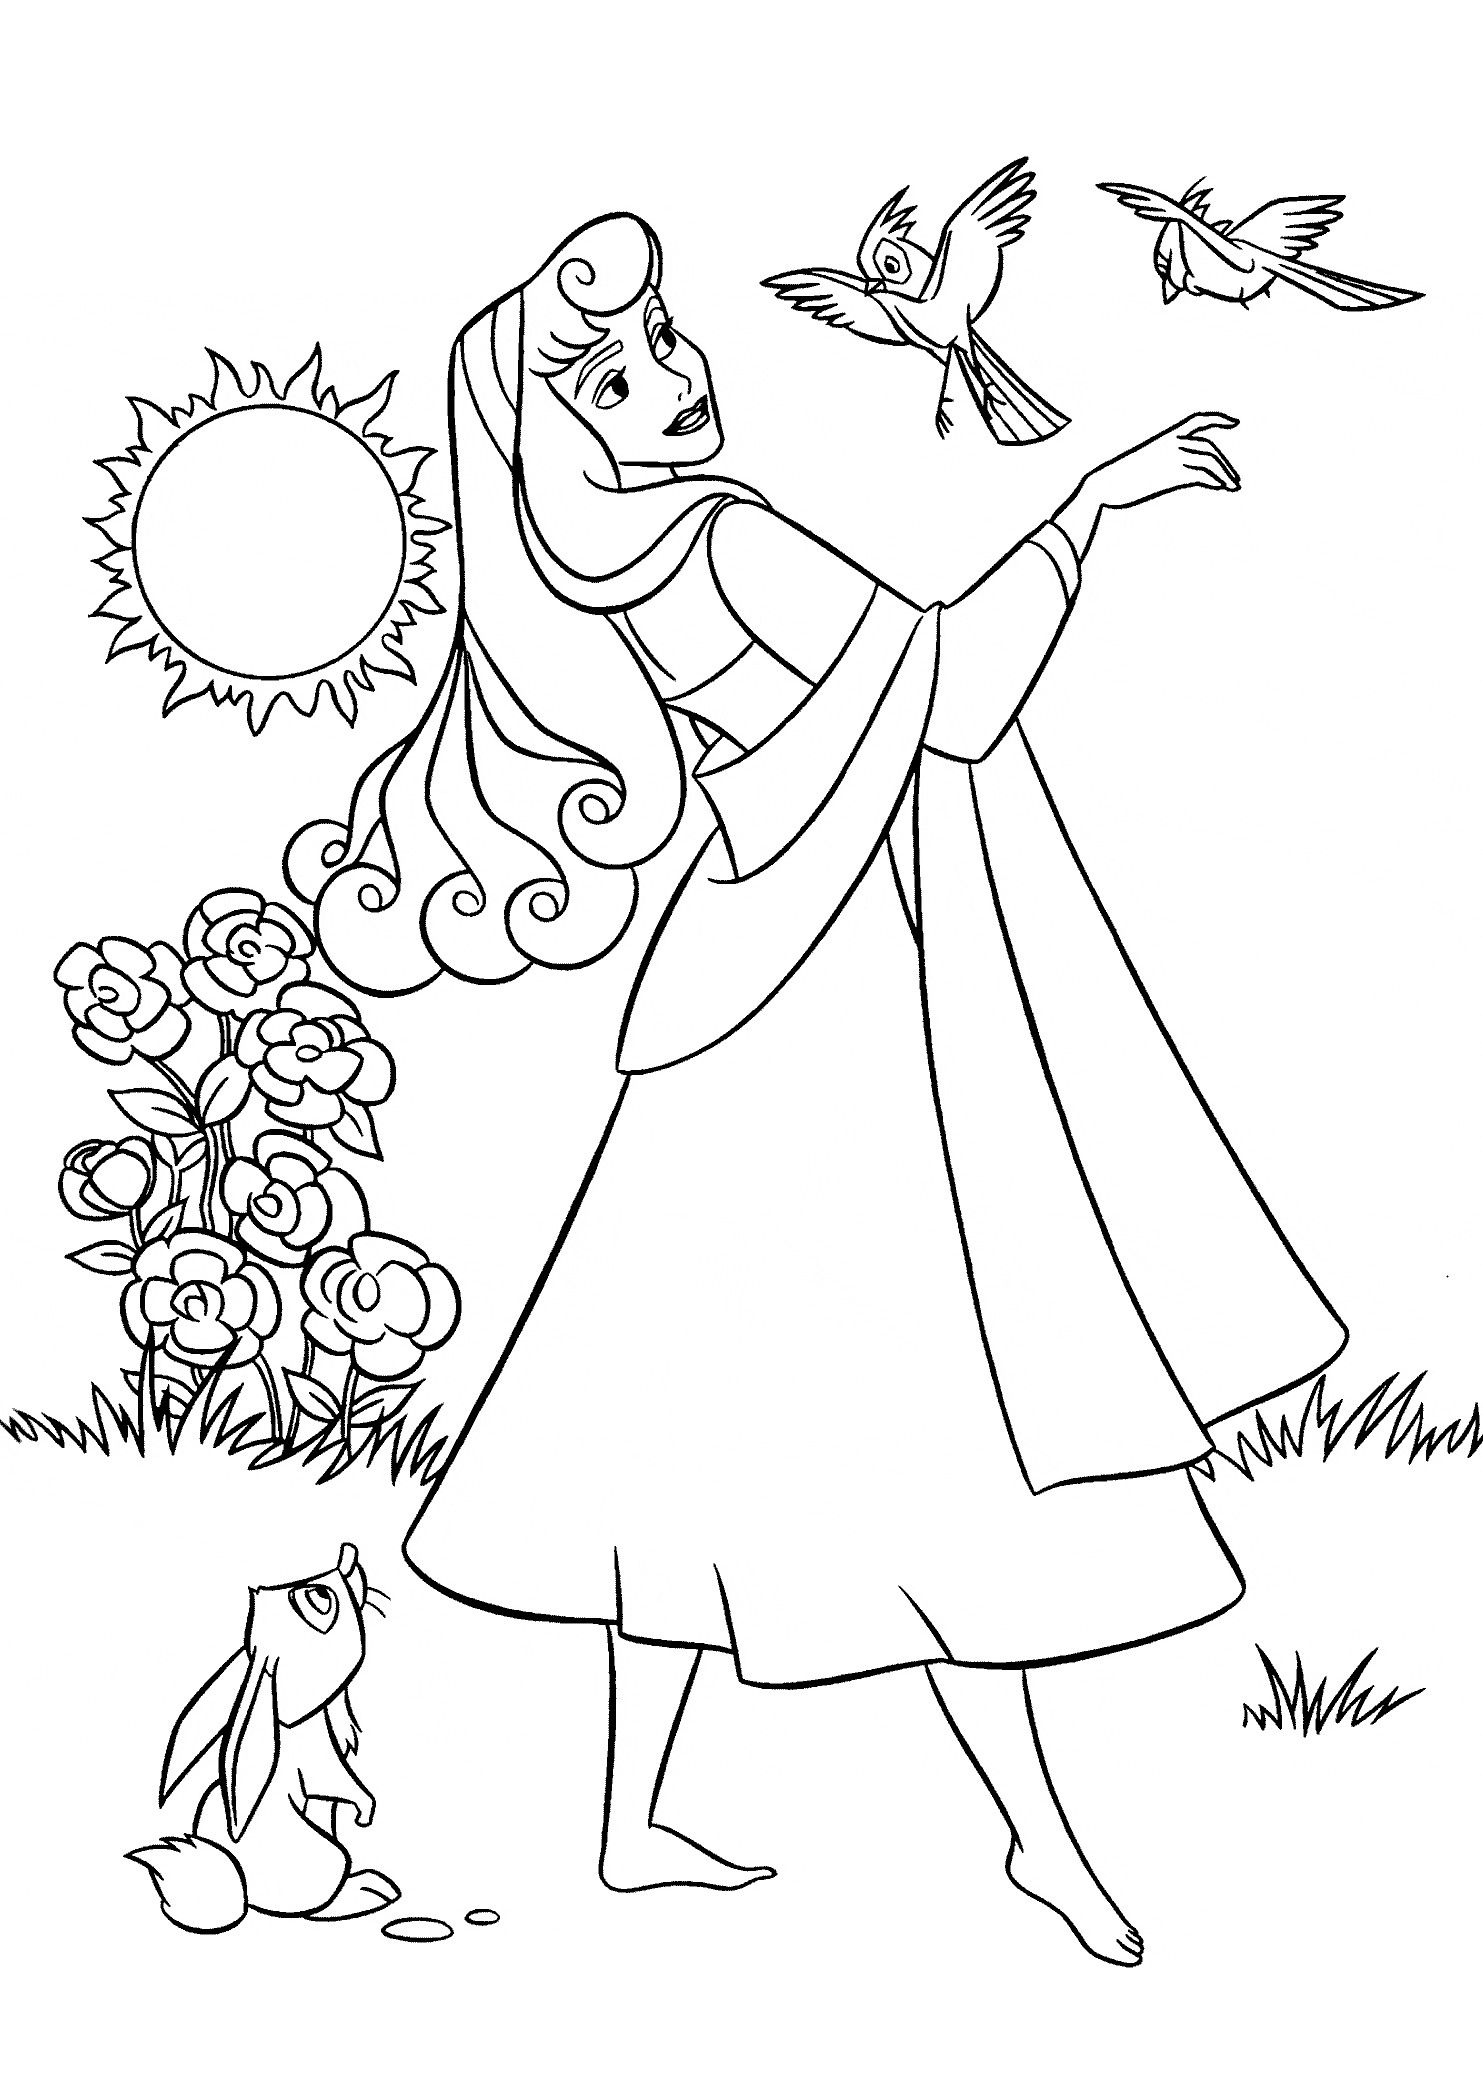 Princess Coloring Pages Sleeping Beauty From The Thousand Photos On Lin Disney Princess Coloring Pages Sleeping Beauty Coloring Pages Princess Coloring Pages